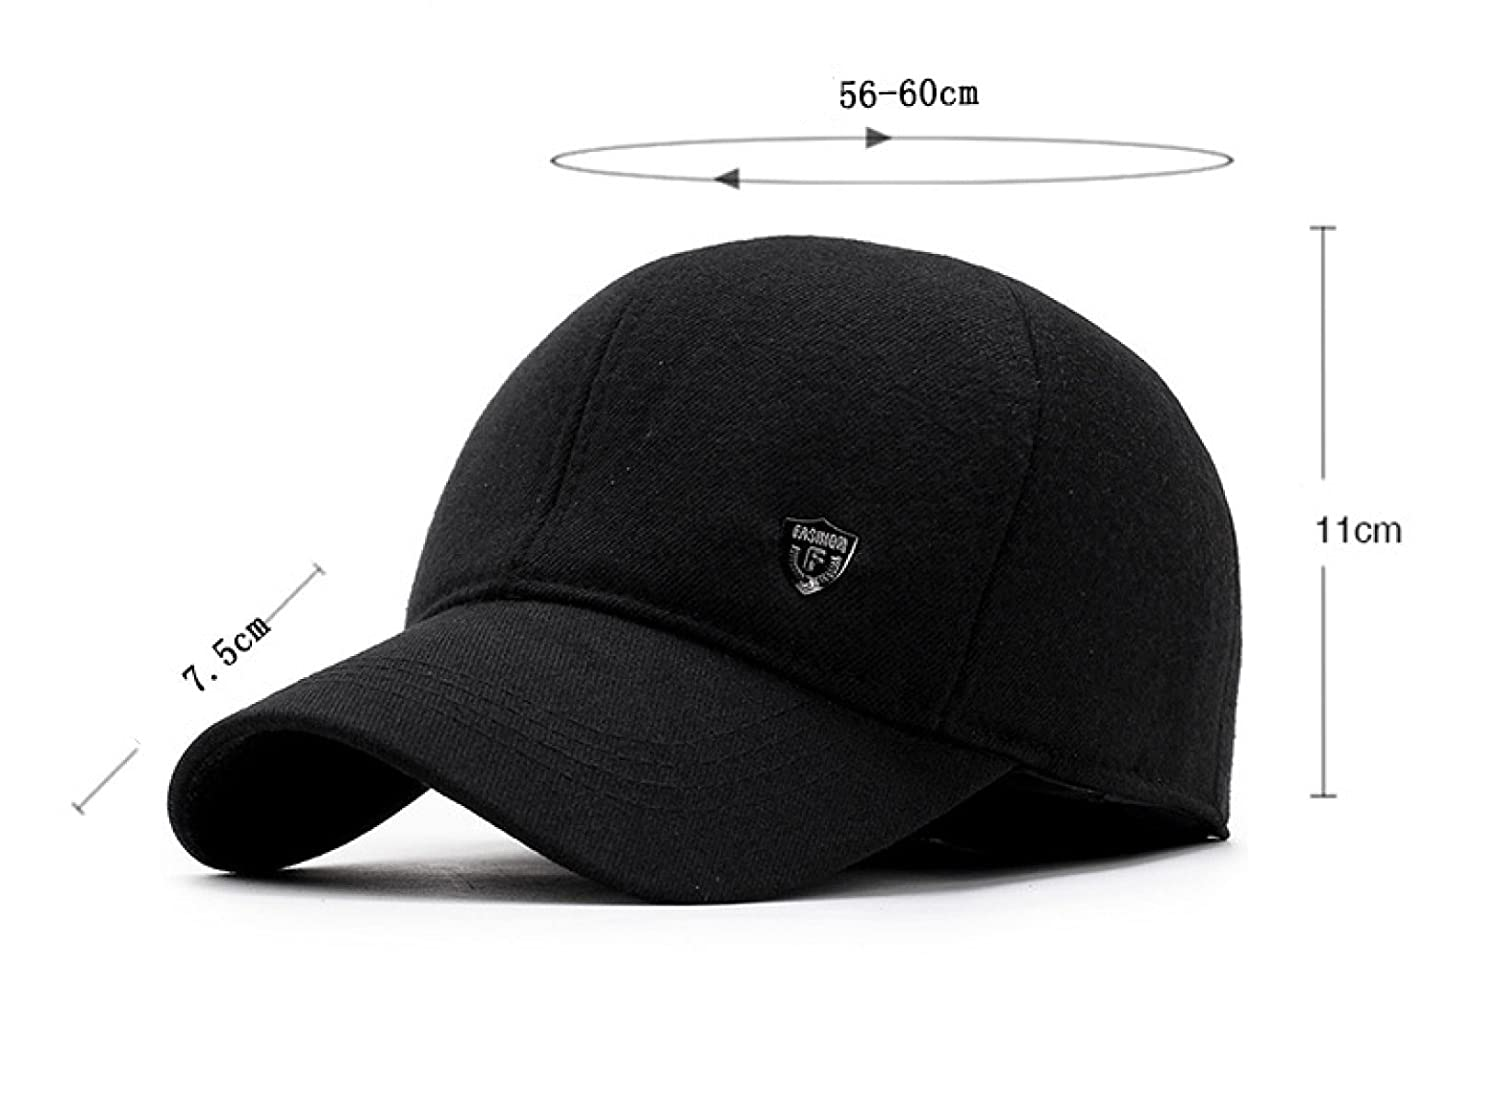 024ddaa7417 Hat Men Outdoors Leisure Warm Baseball Cap Middle-aged Autumn And Winter  Thickening Ear Protection Adjustable